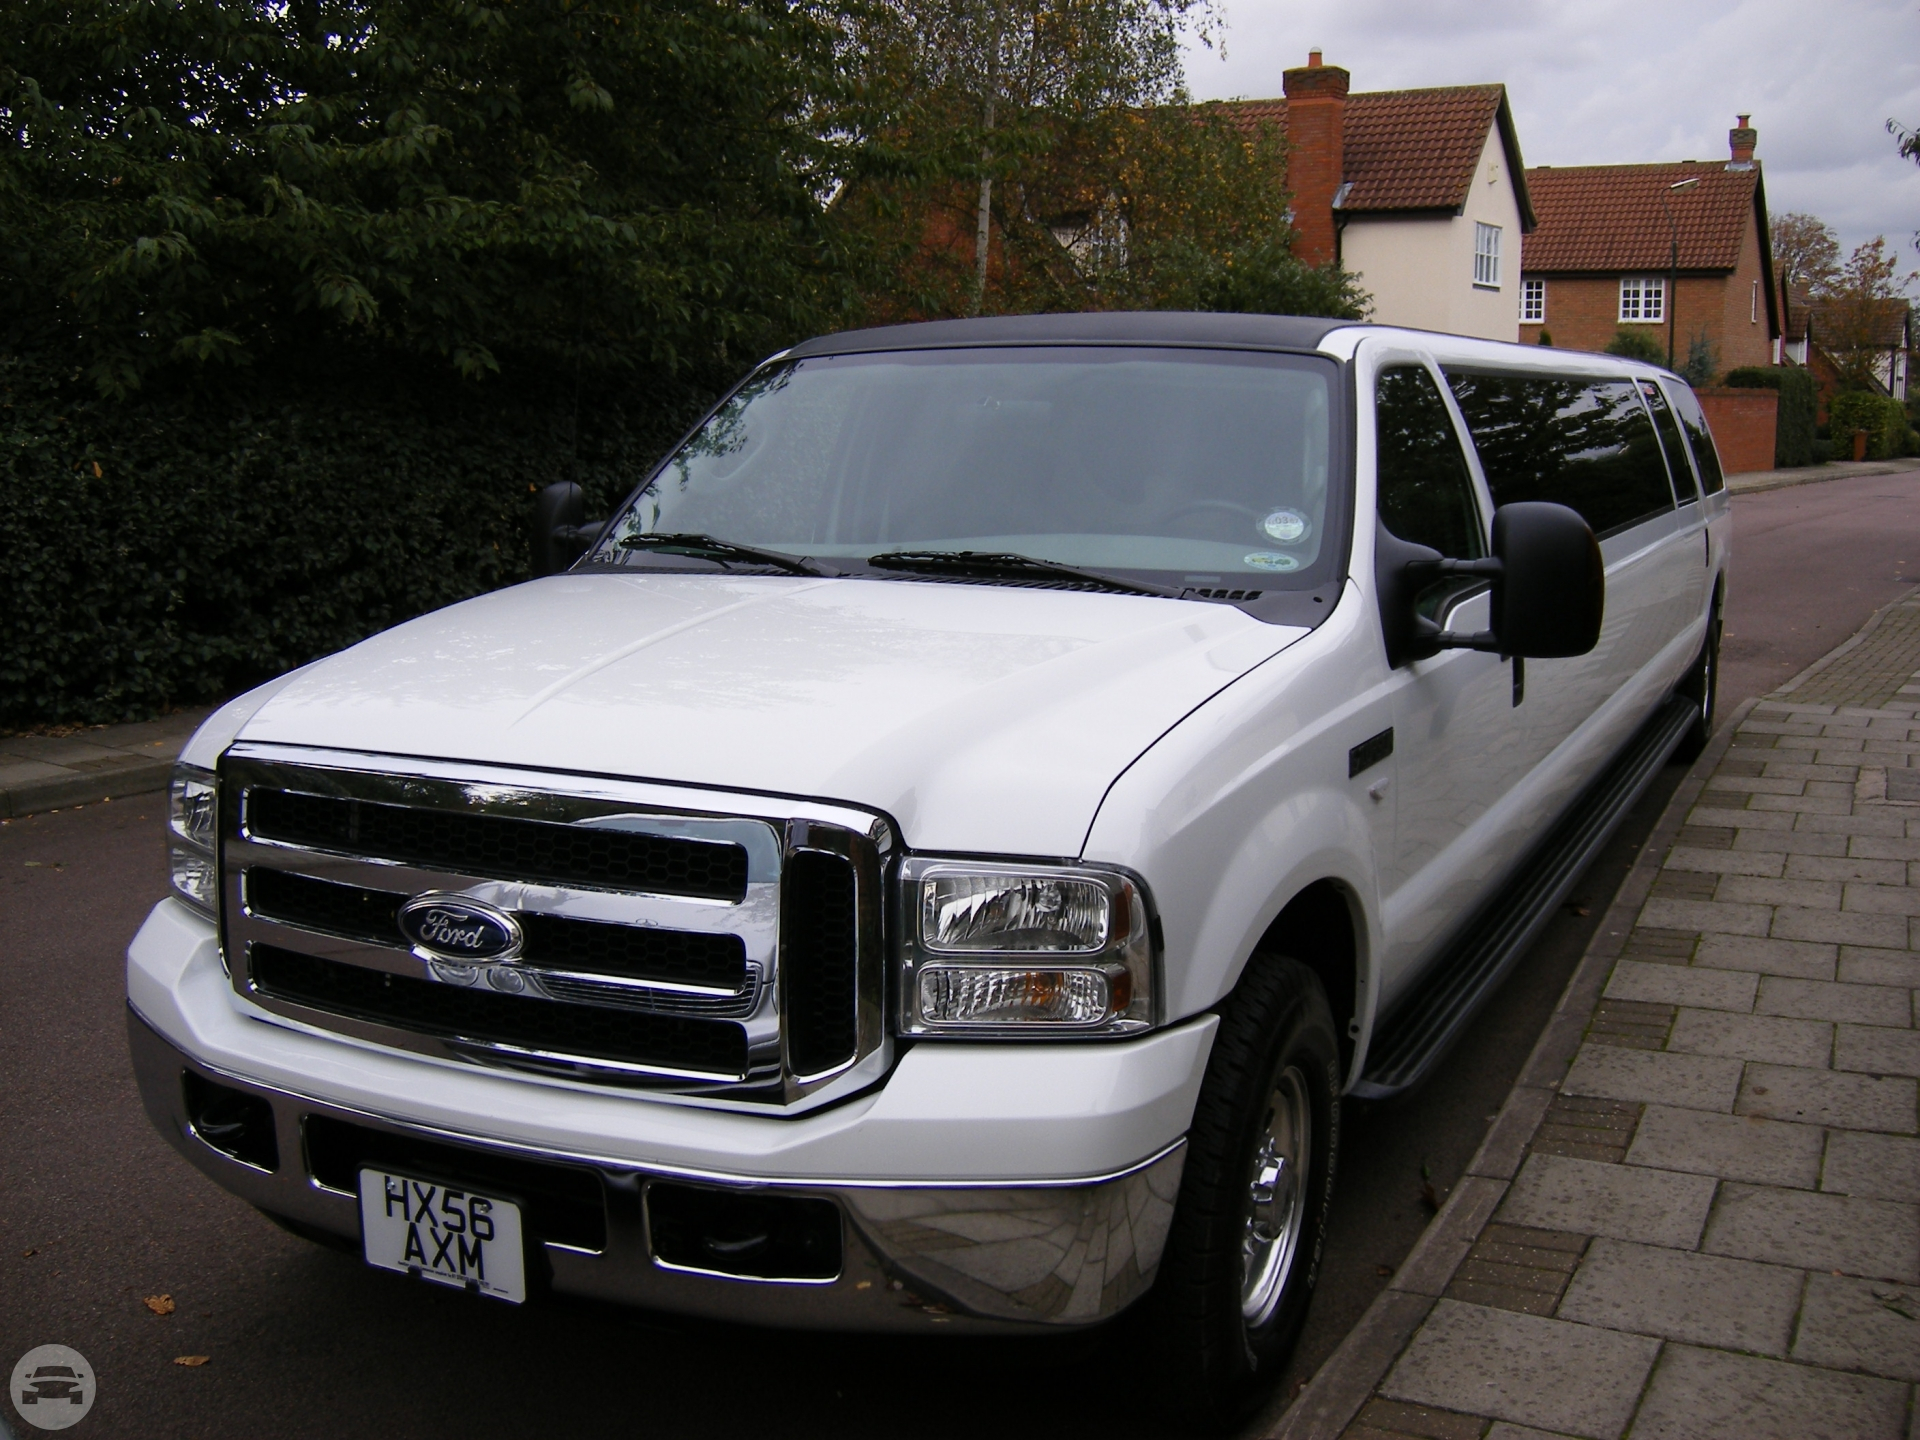 White Excursion Limousine Limo  / Stansted CM24 8JT, UK   / Hourly £0.00